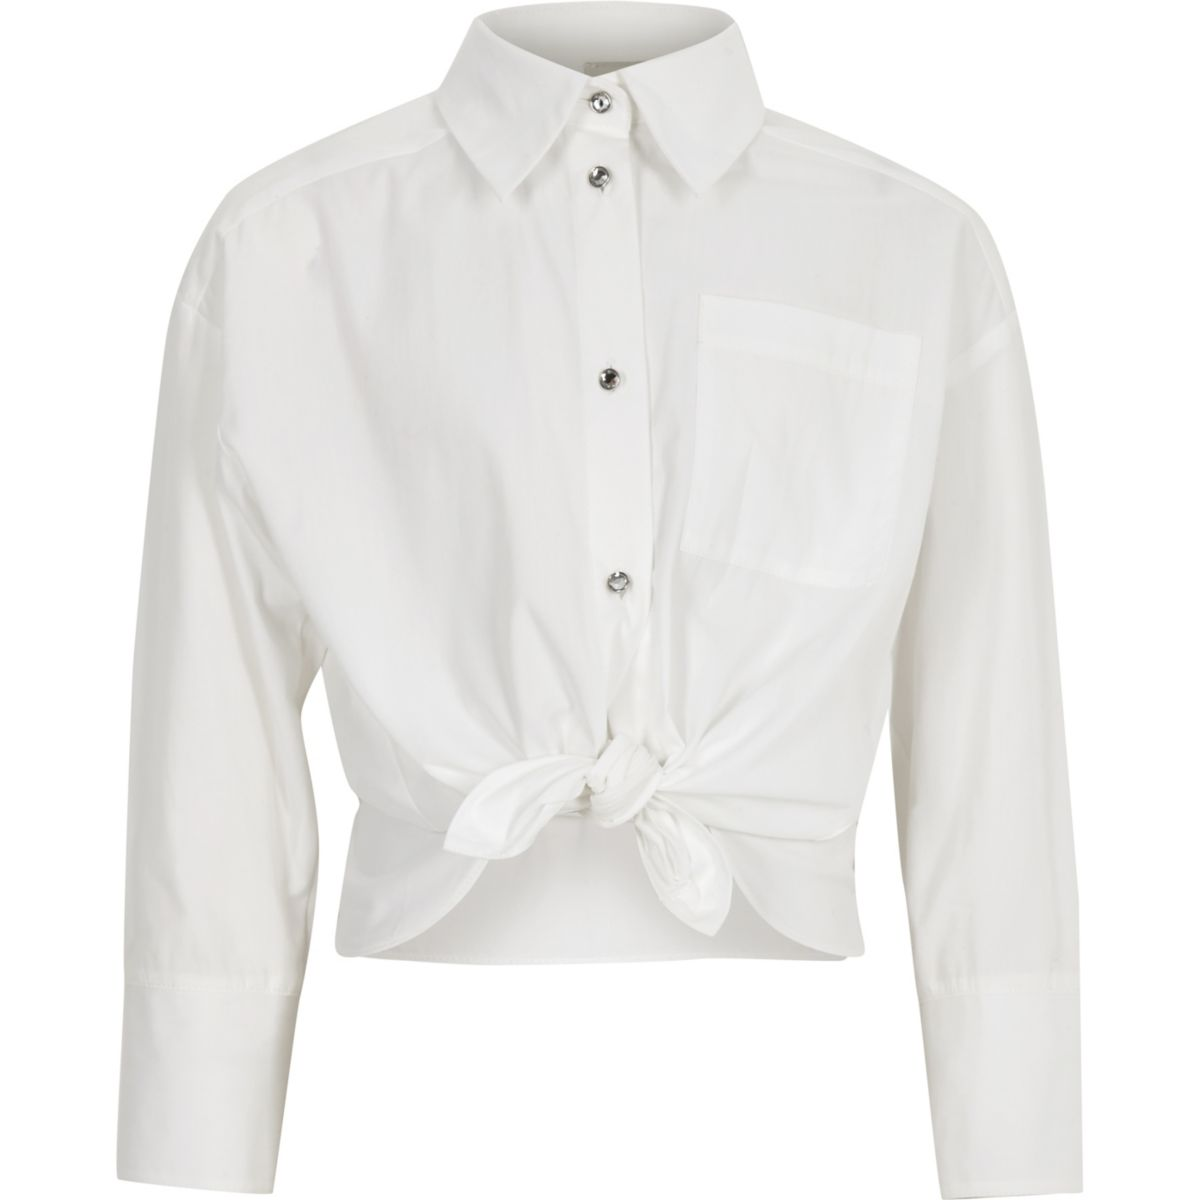 Girls white poplin jewel button shirt